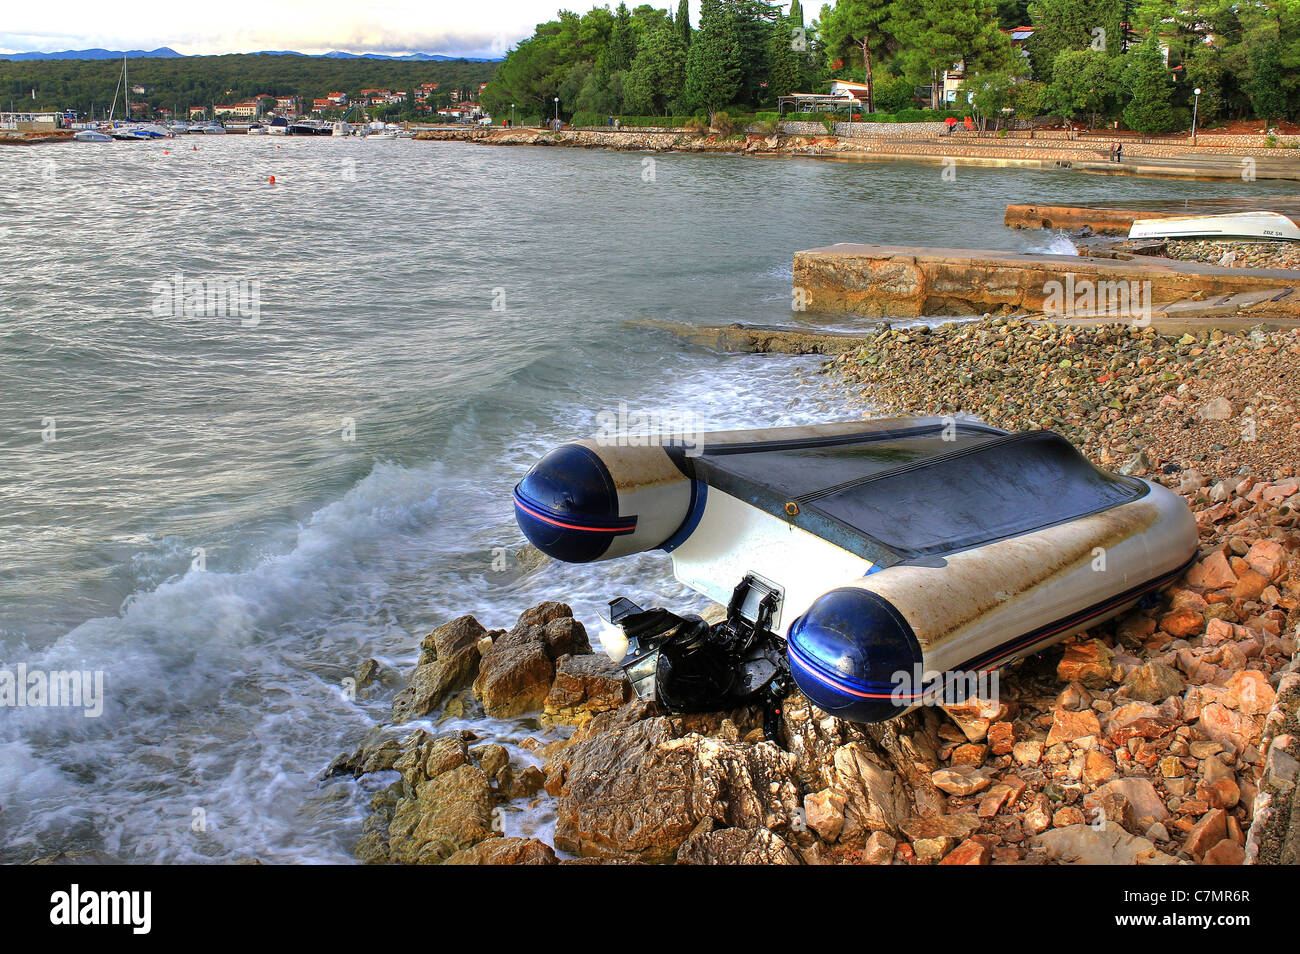 Boat crashed on the rocks sea shore after strong storm, Malinska, croatia - Stock Image